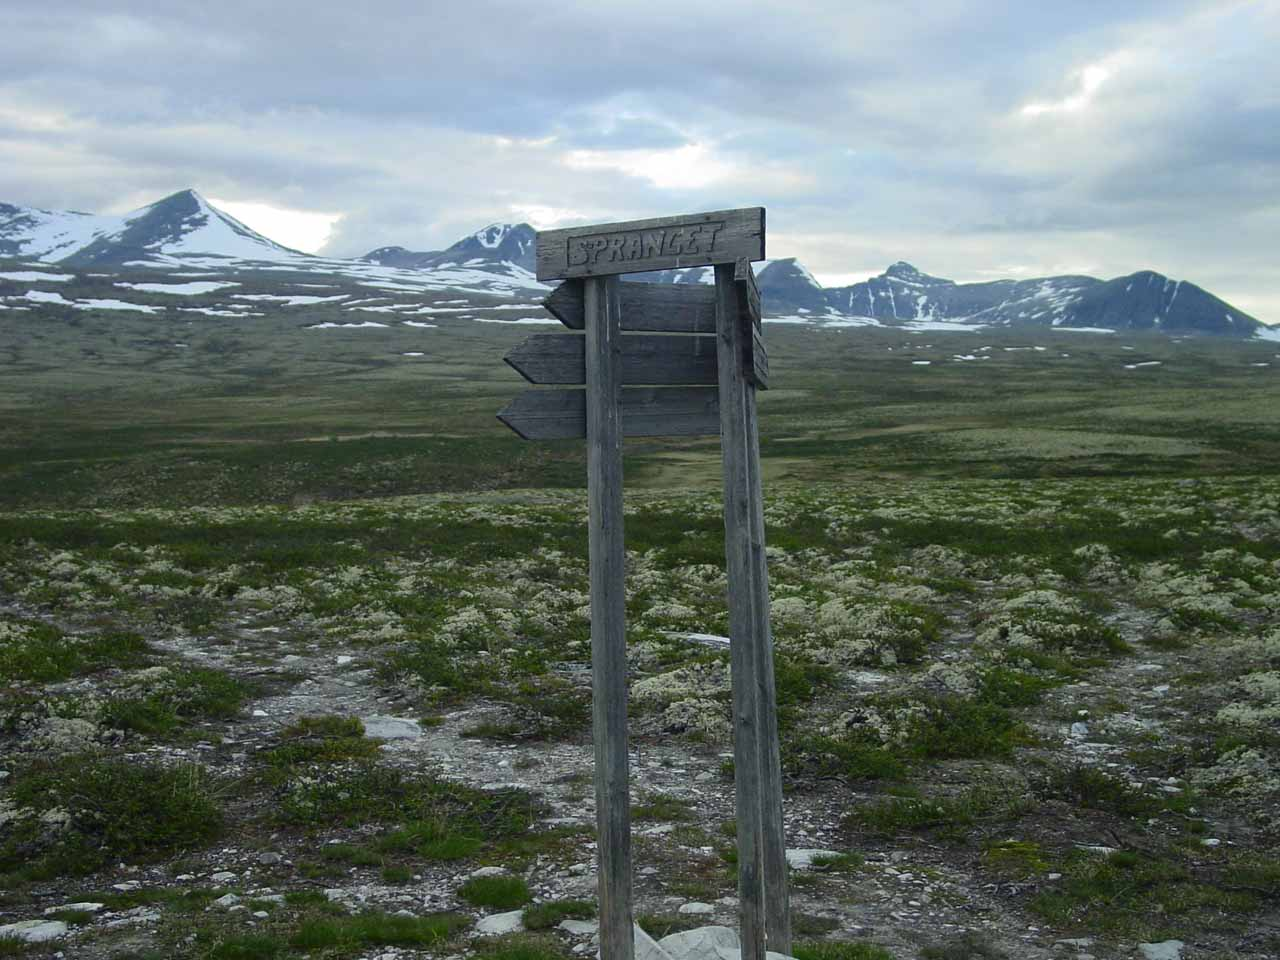 Had I seen this Spranget sign at the start, I probably could've saved another 15 minutes of hiking time